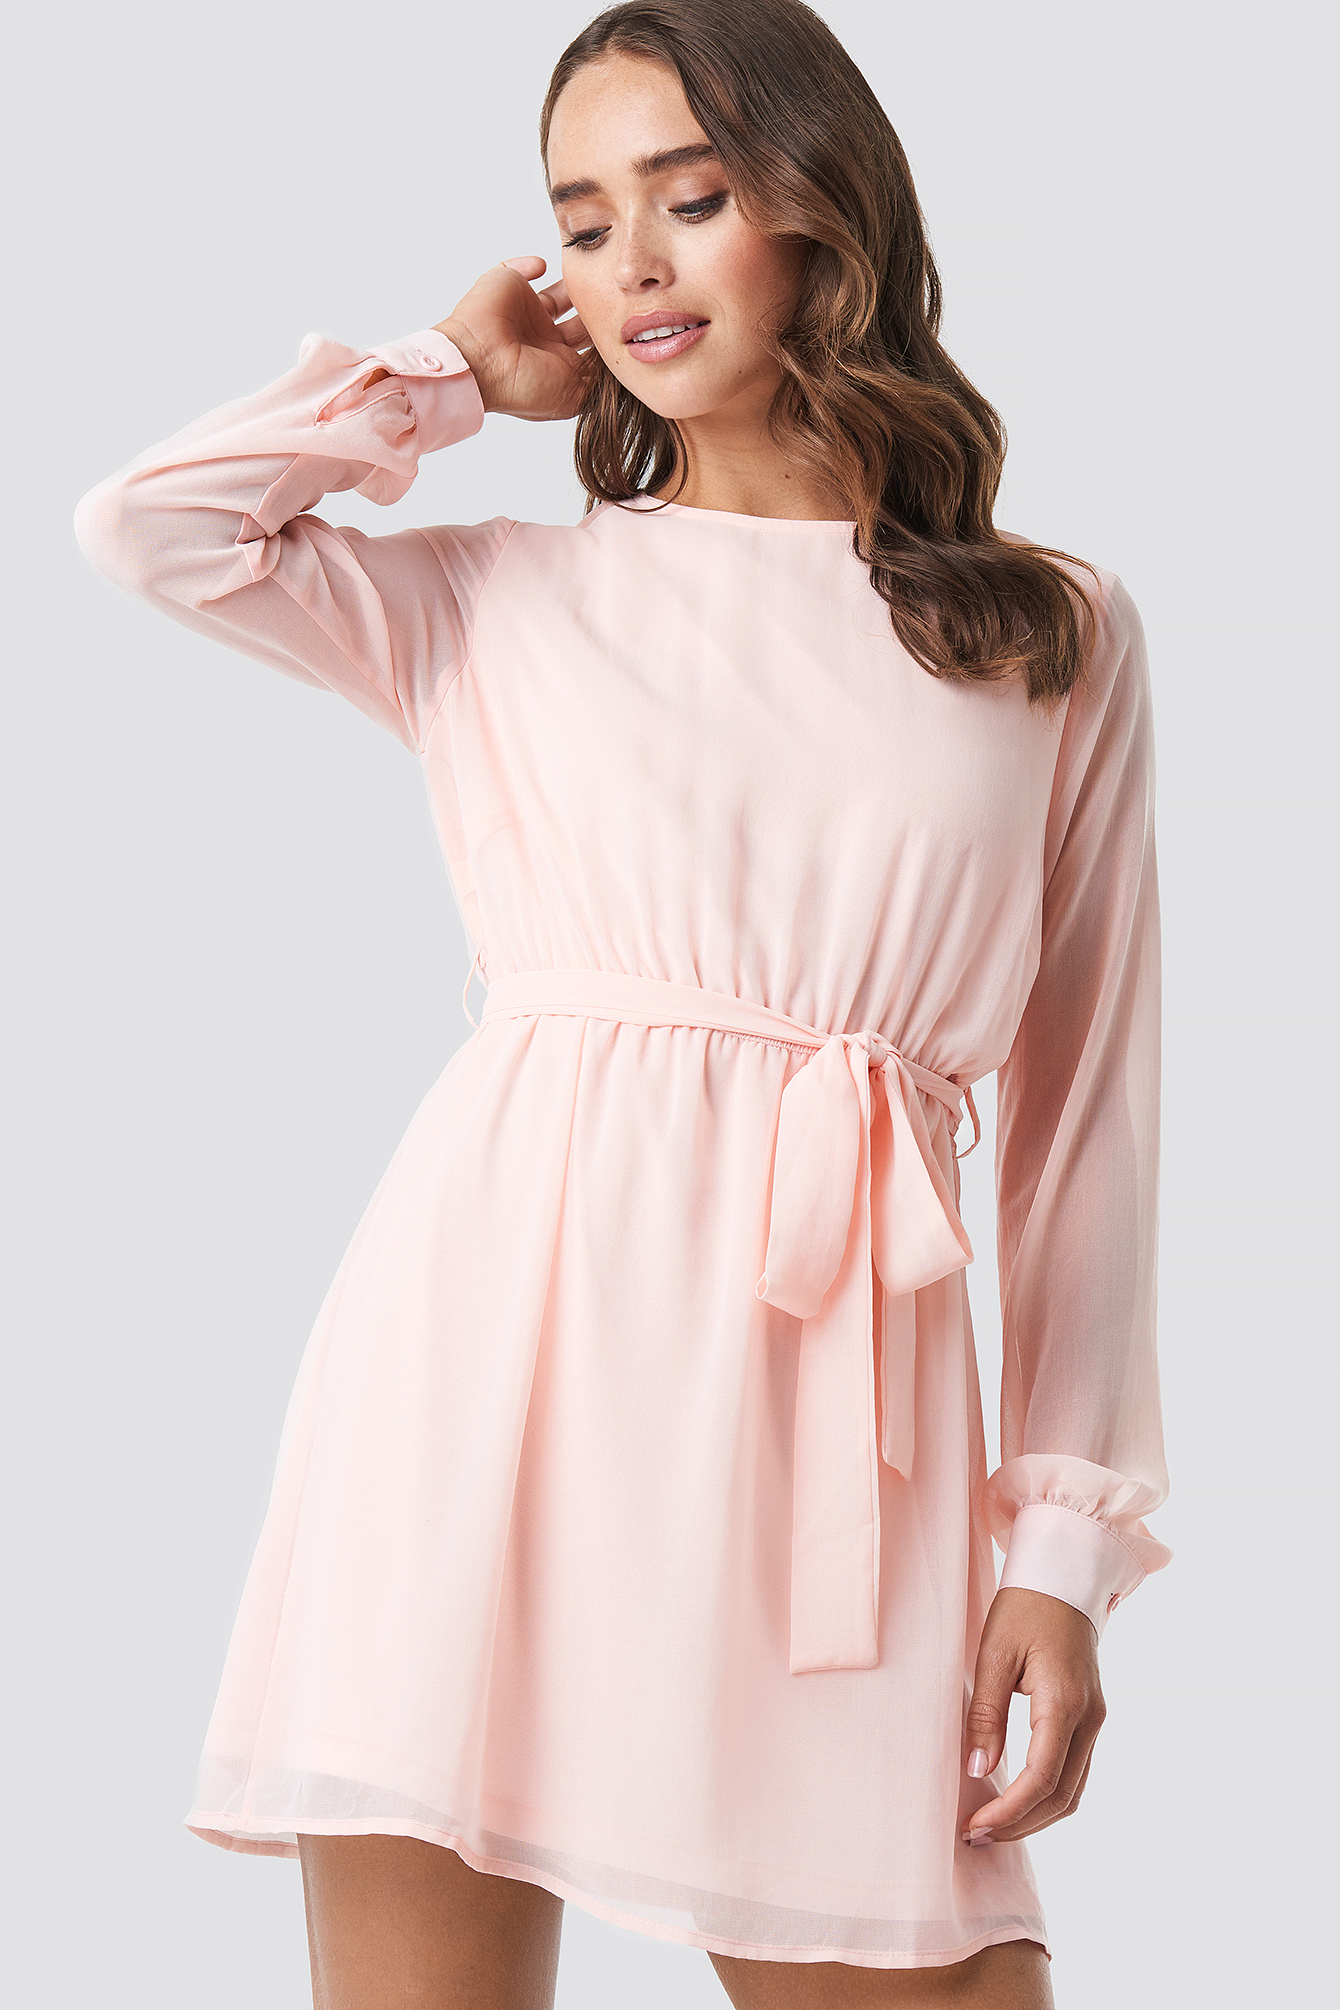 Rose Quartz Chiffon Dress